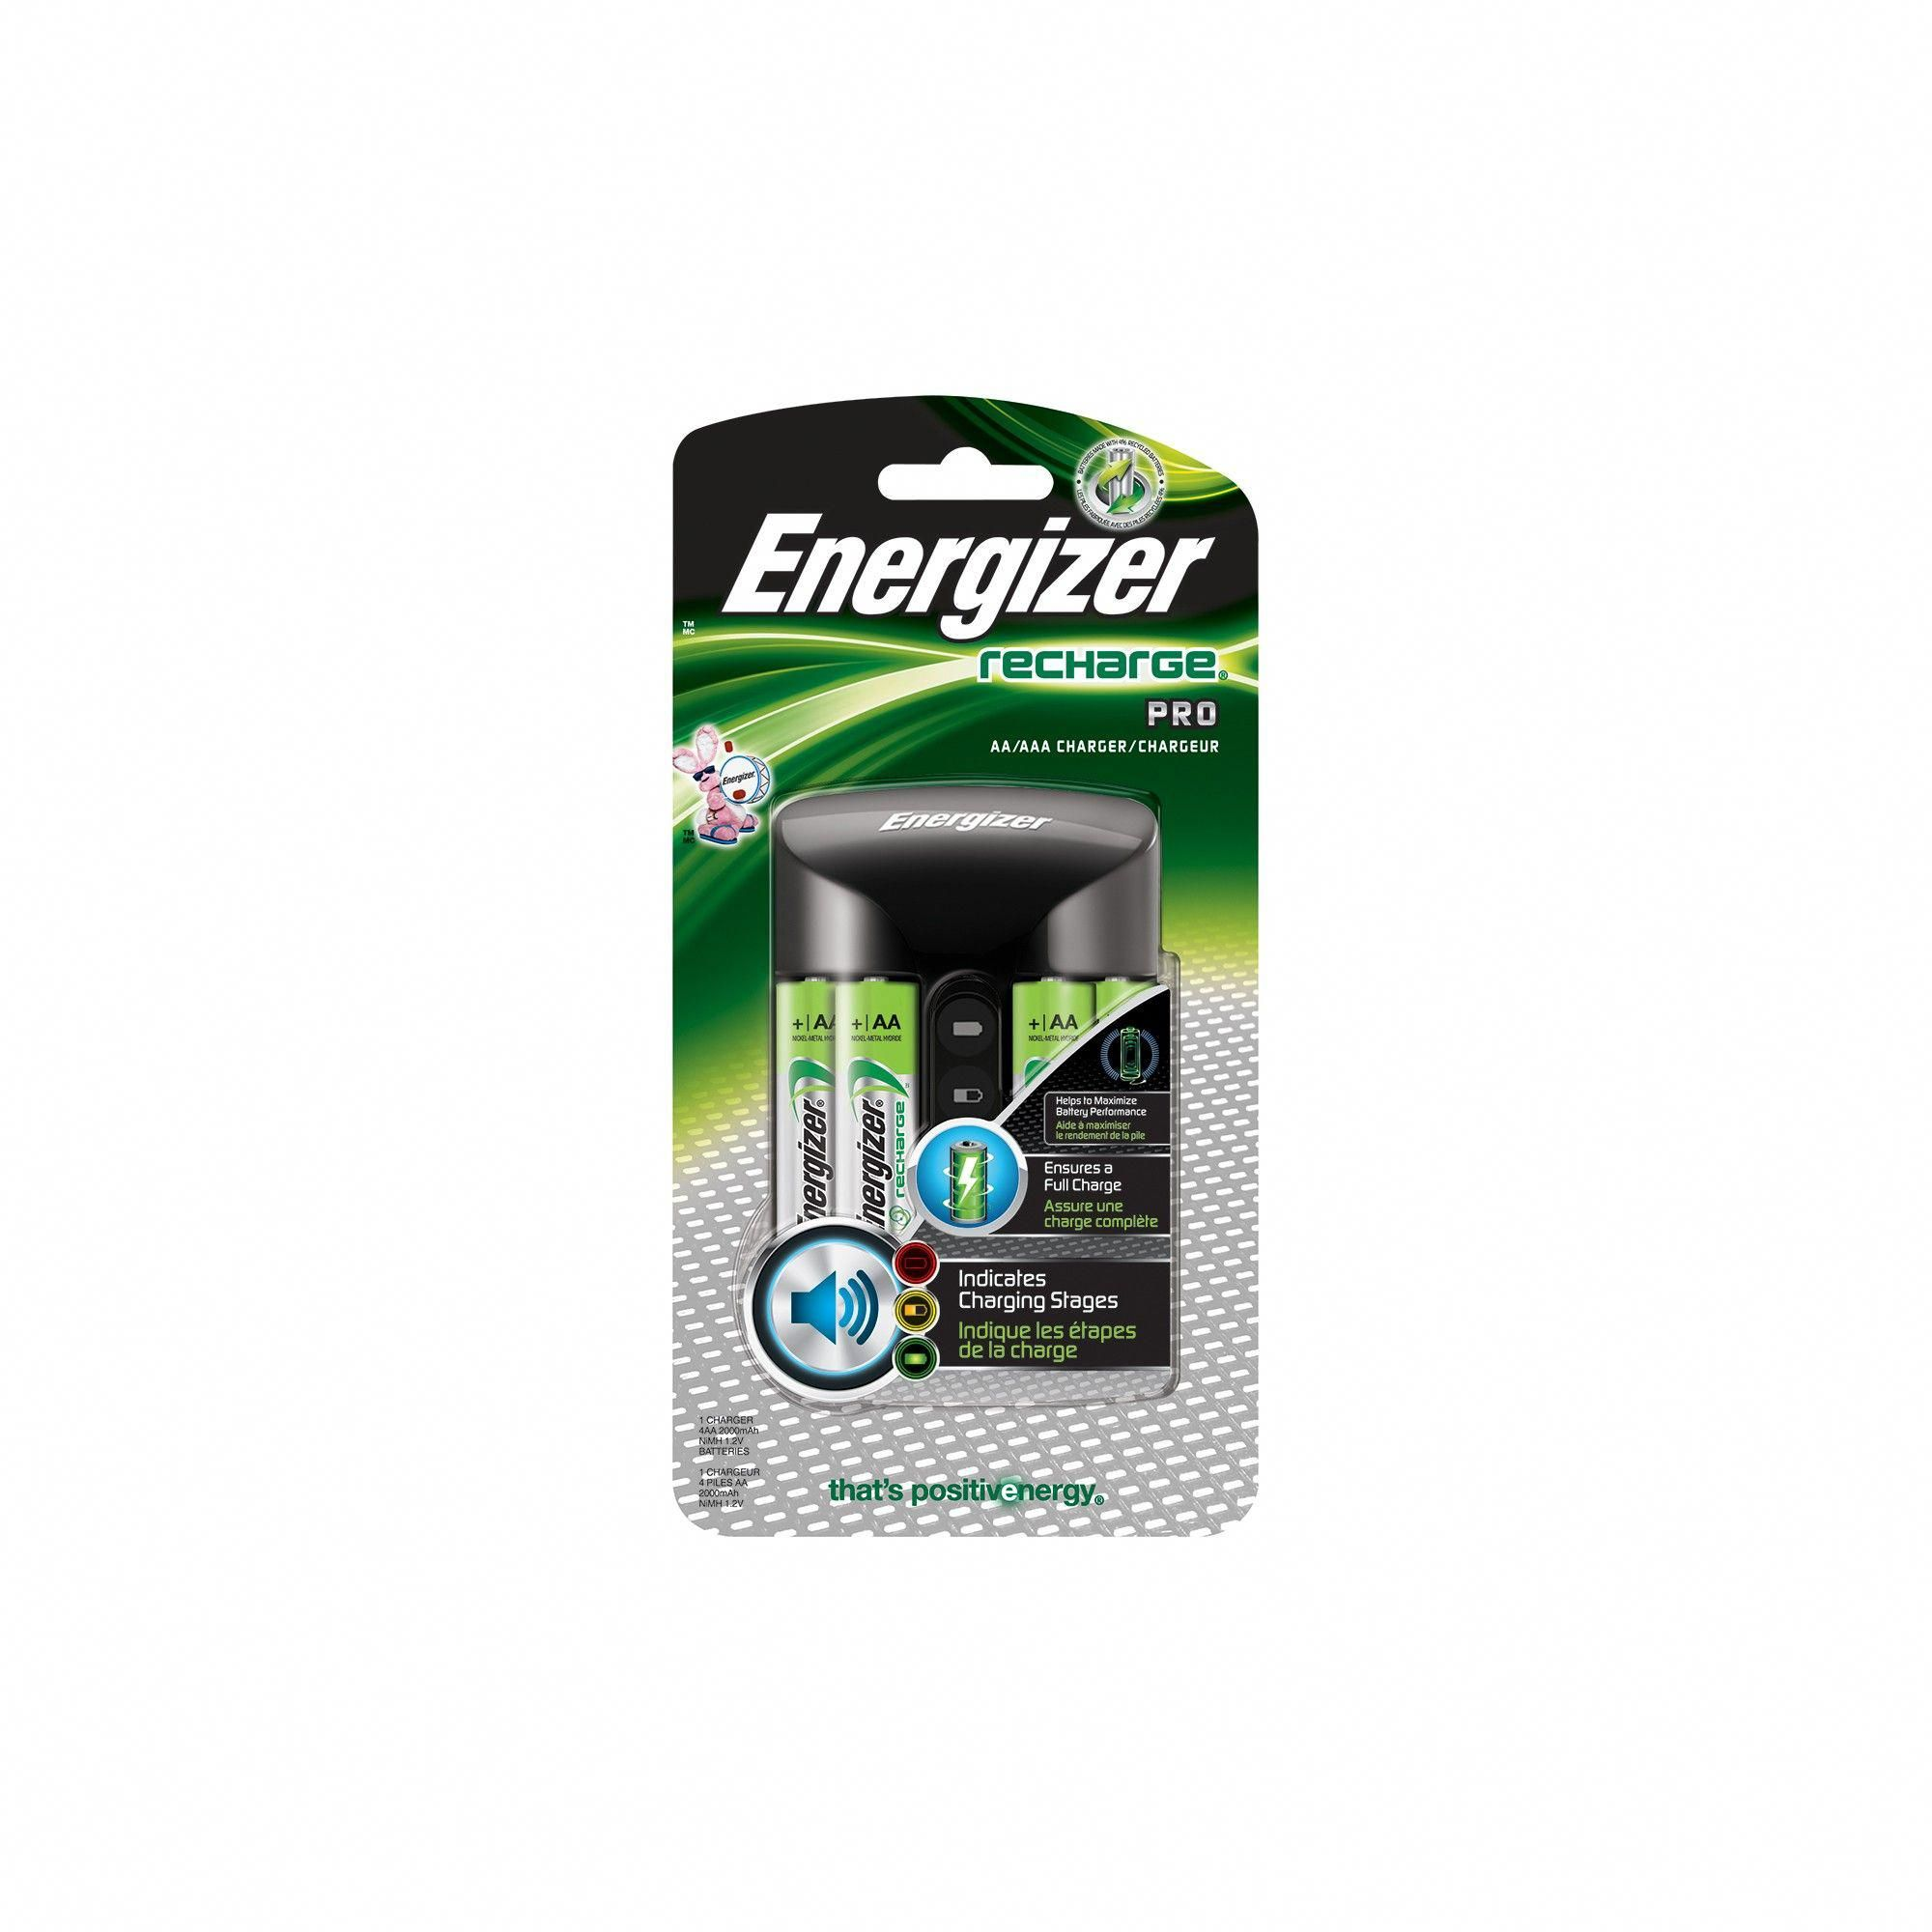 Energizer Recharge Pro Battery Charger (CHPROWB4), Silver